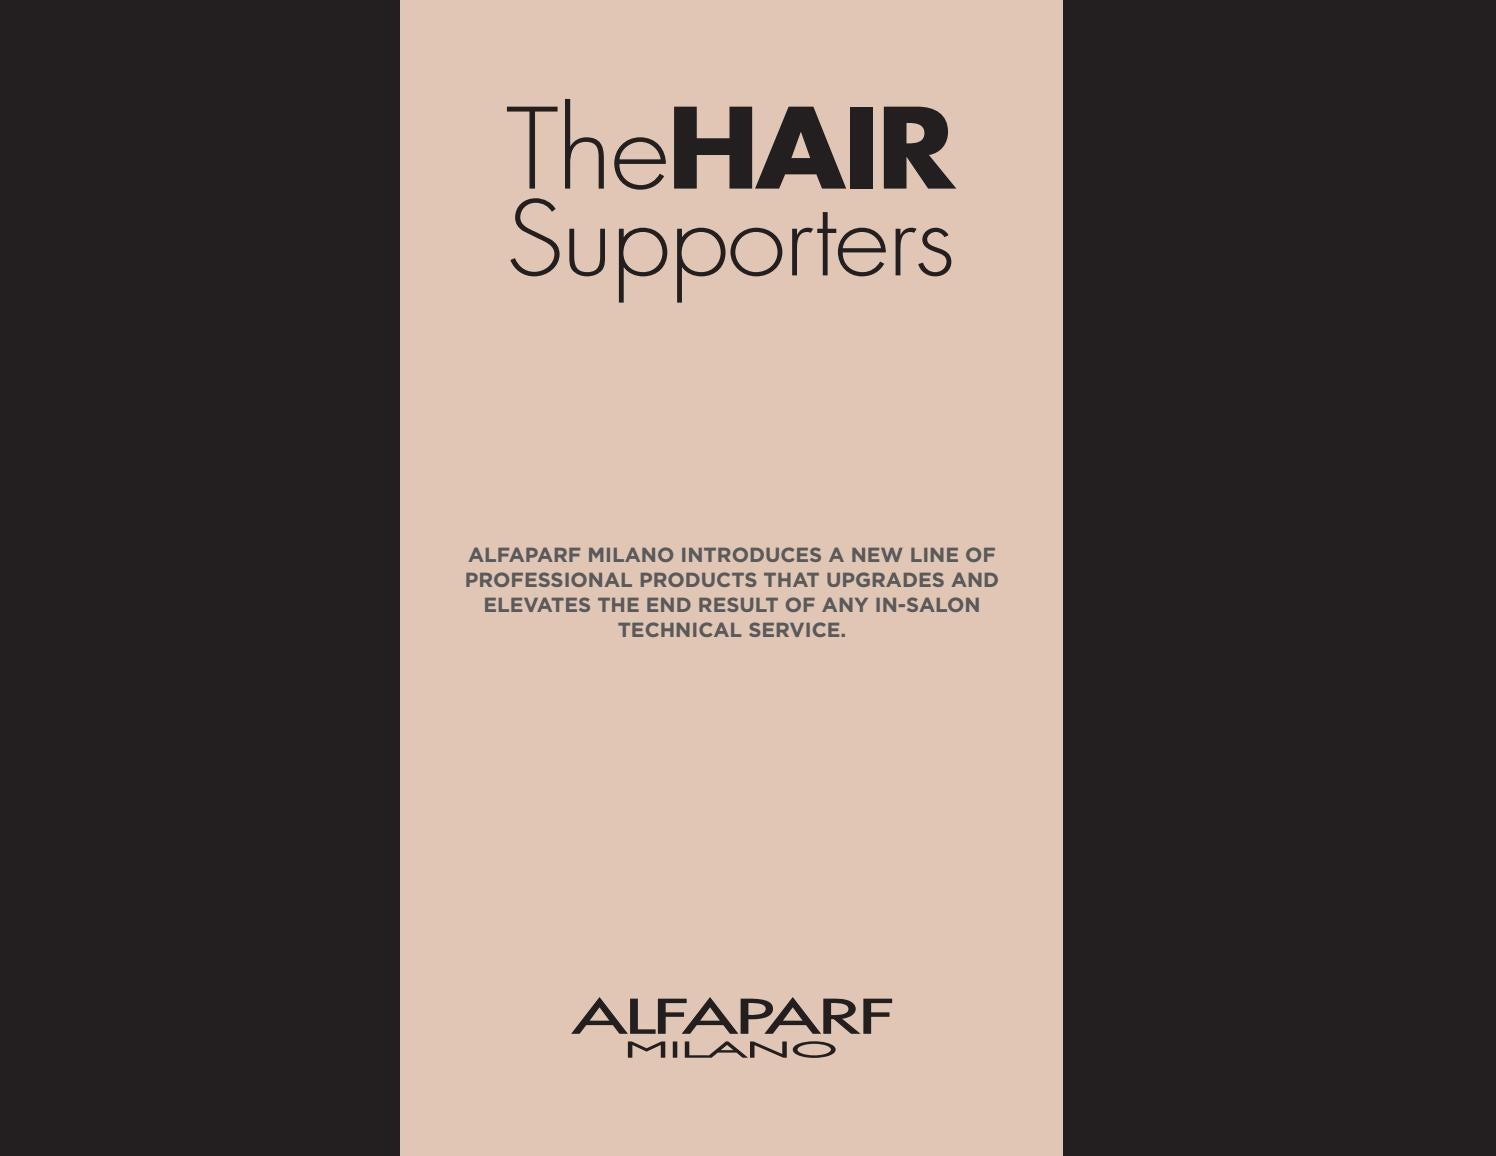 Alfaparf milano the hair supporters by alfaparf milano usa issuu nvjuhfo Images